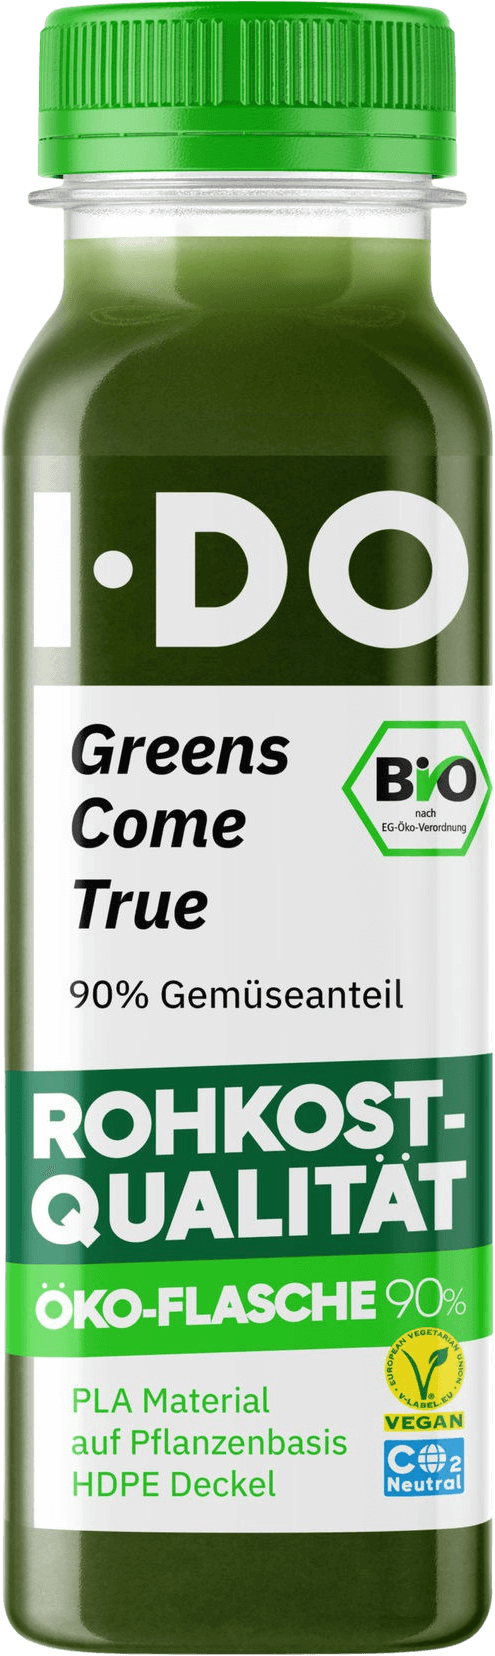 IDO BIO, greens comes true, vegetable juice, product promotion